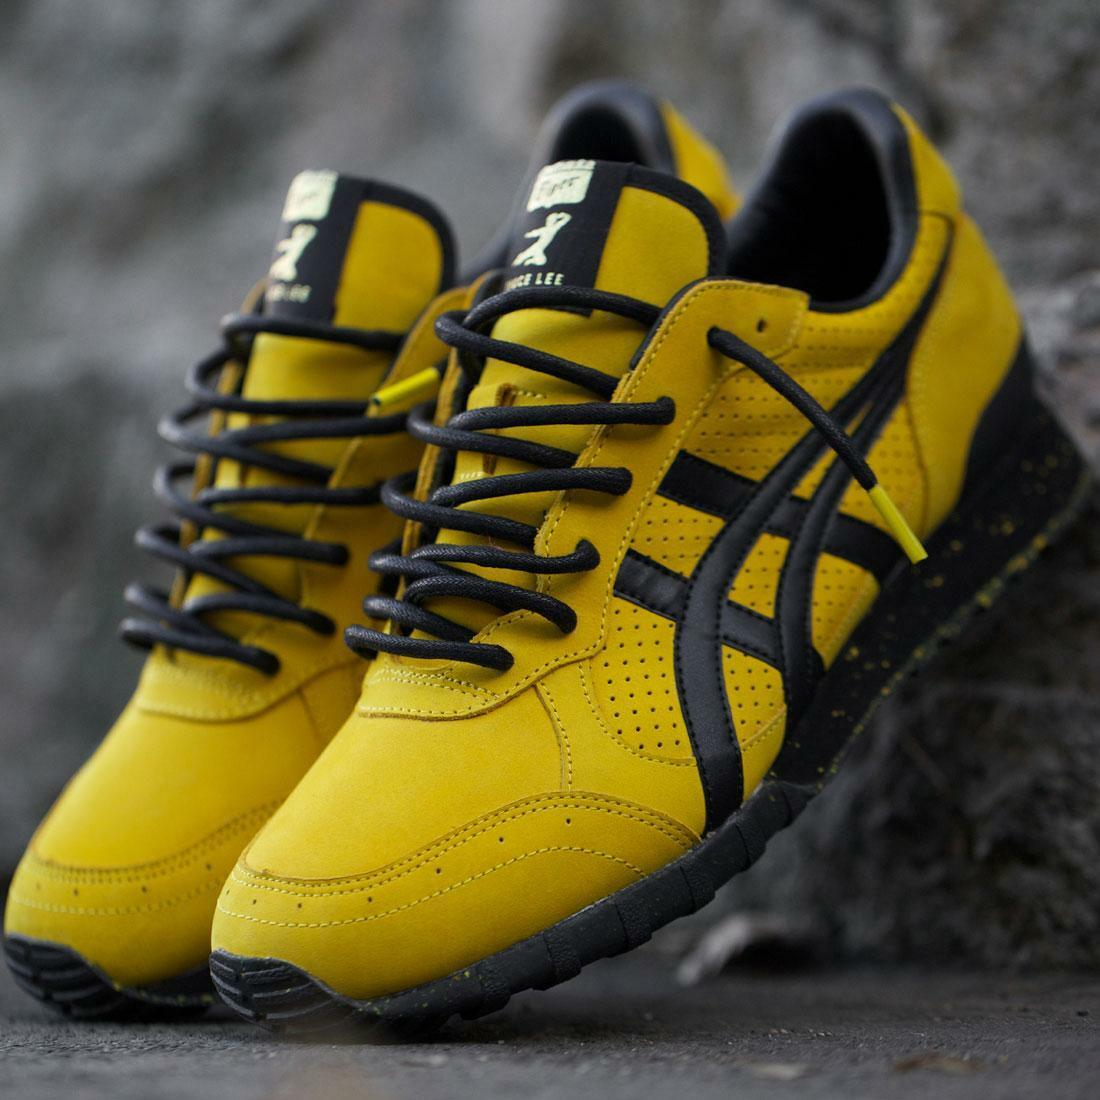 BAIT x Bruce Lee x x x Onitsuka Tiger Farbeado Eighty Five Legend US 6.5 4df6ed